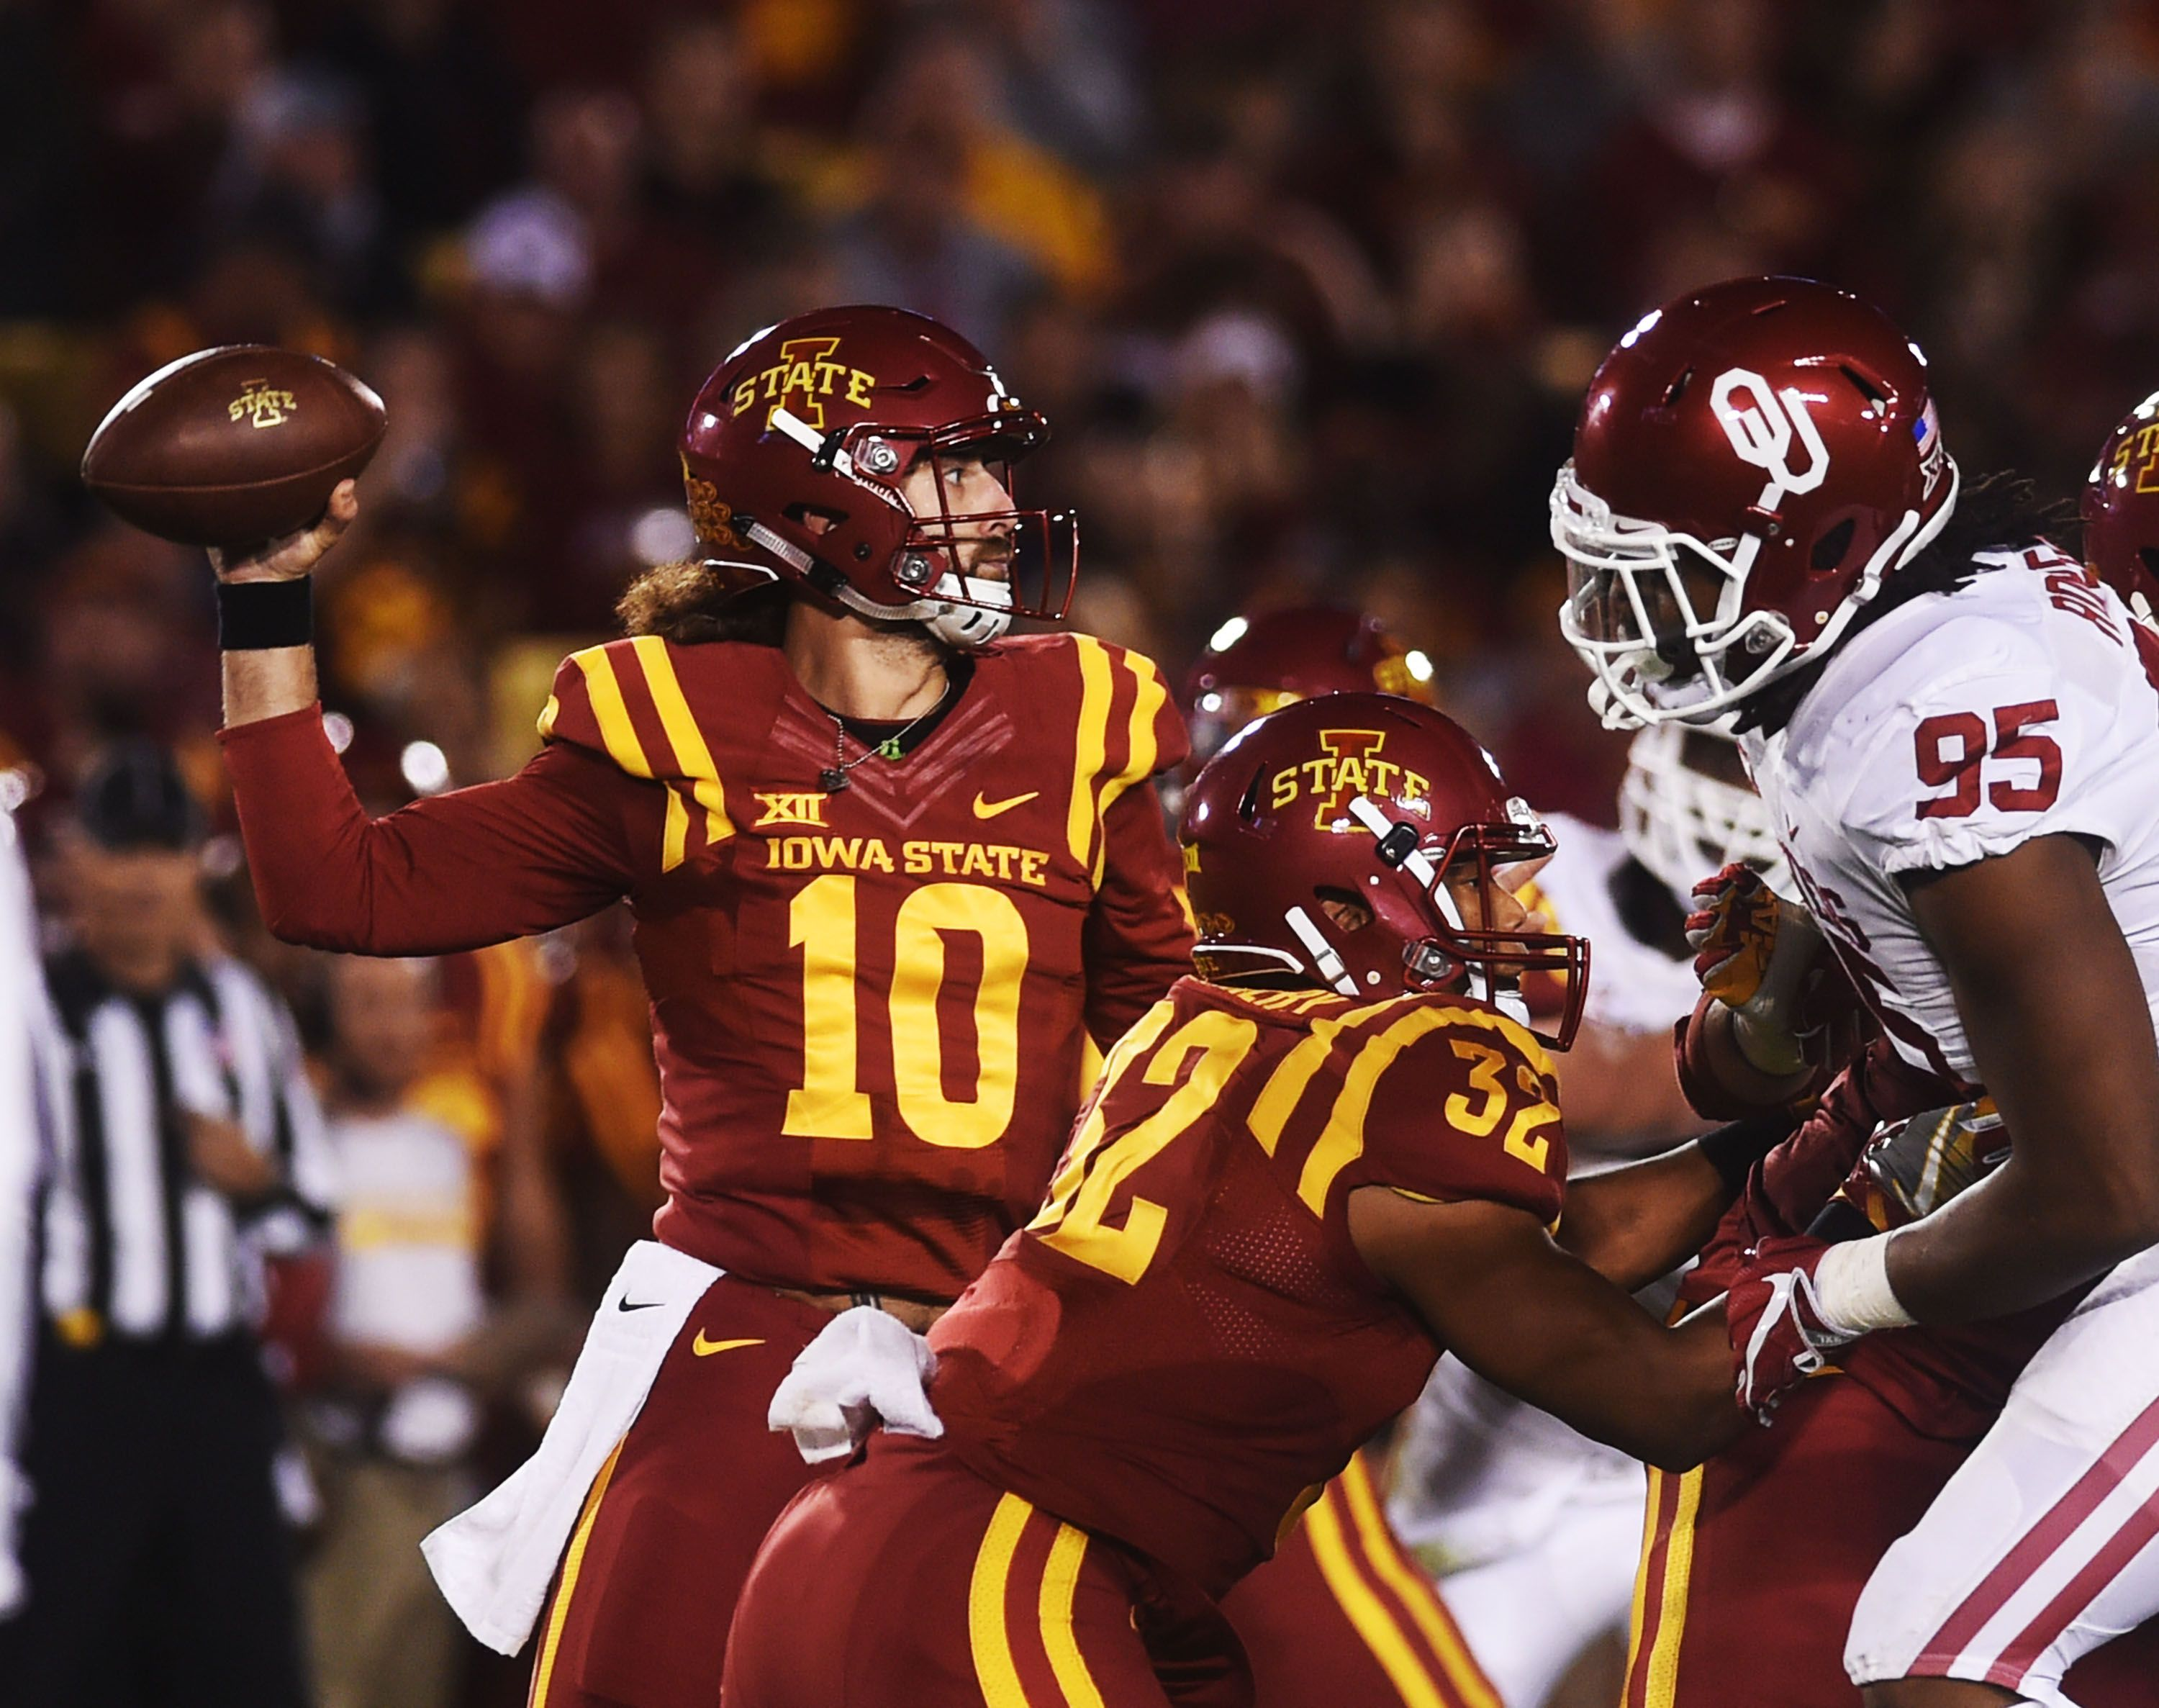 In the last two games, Iowa State quarterback Jacob Park